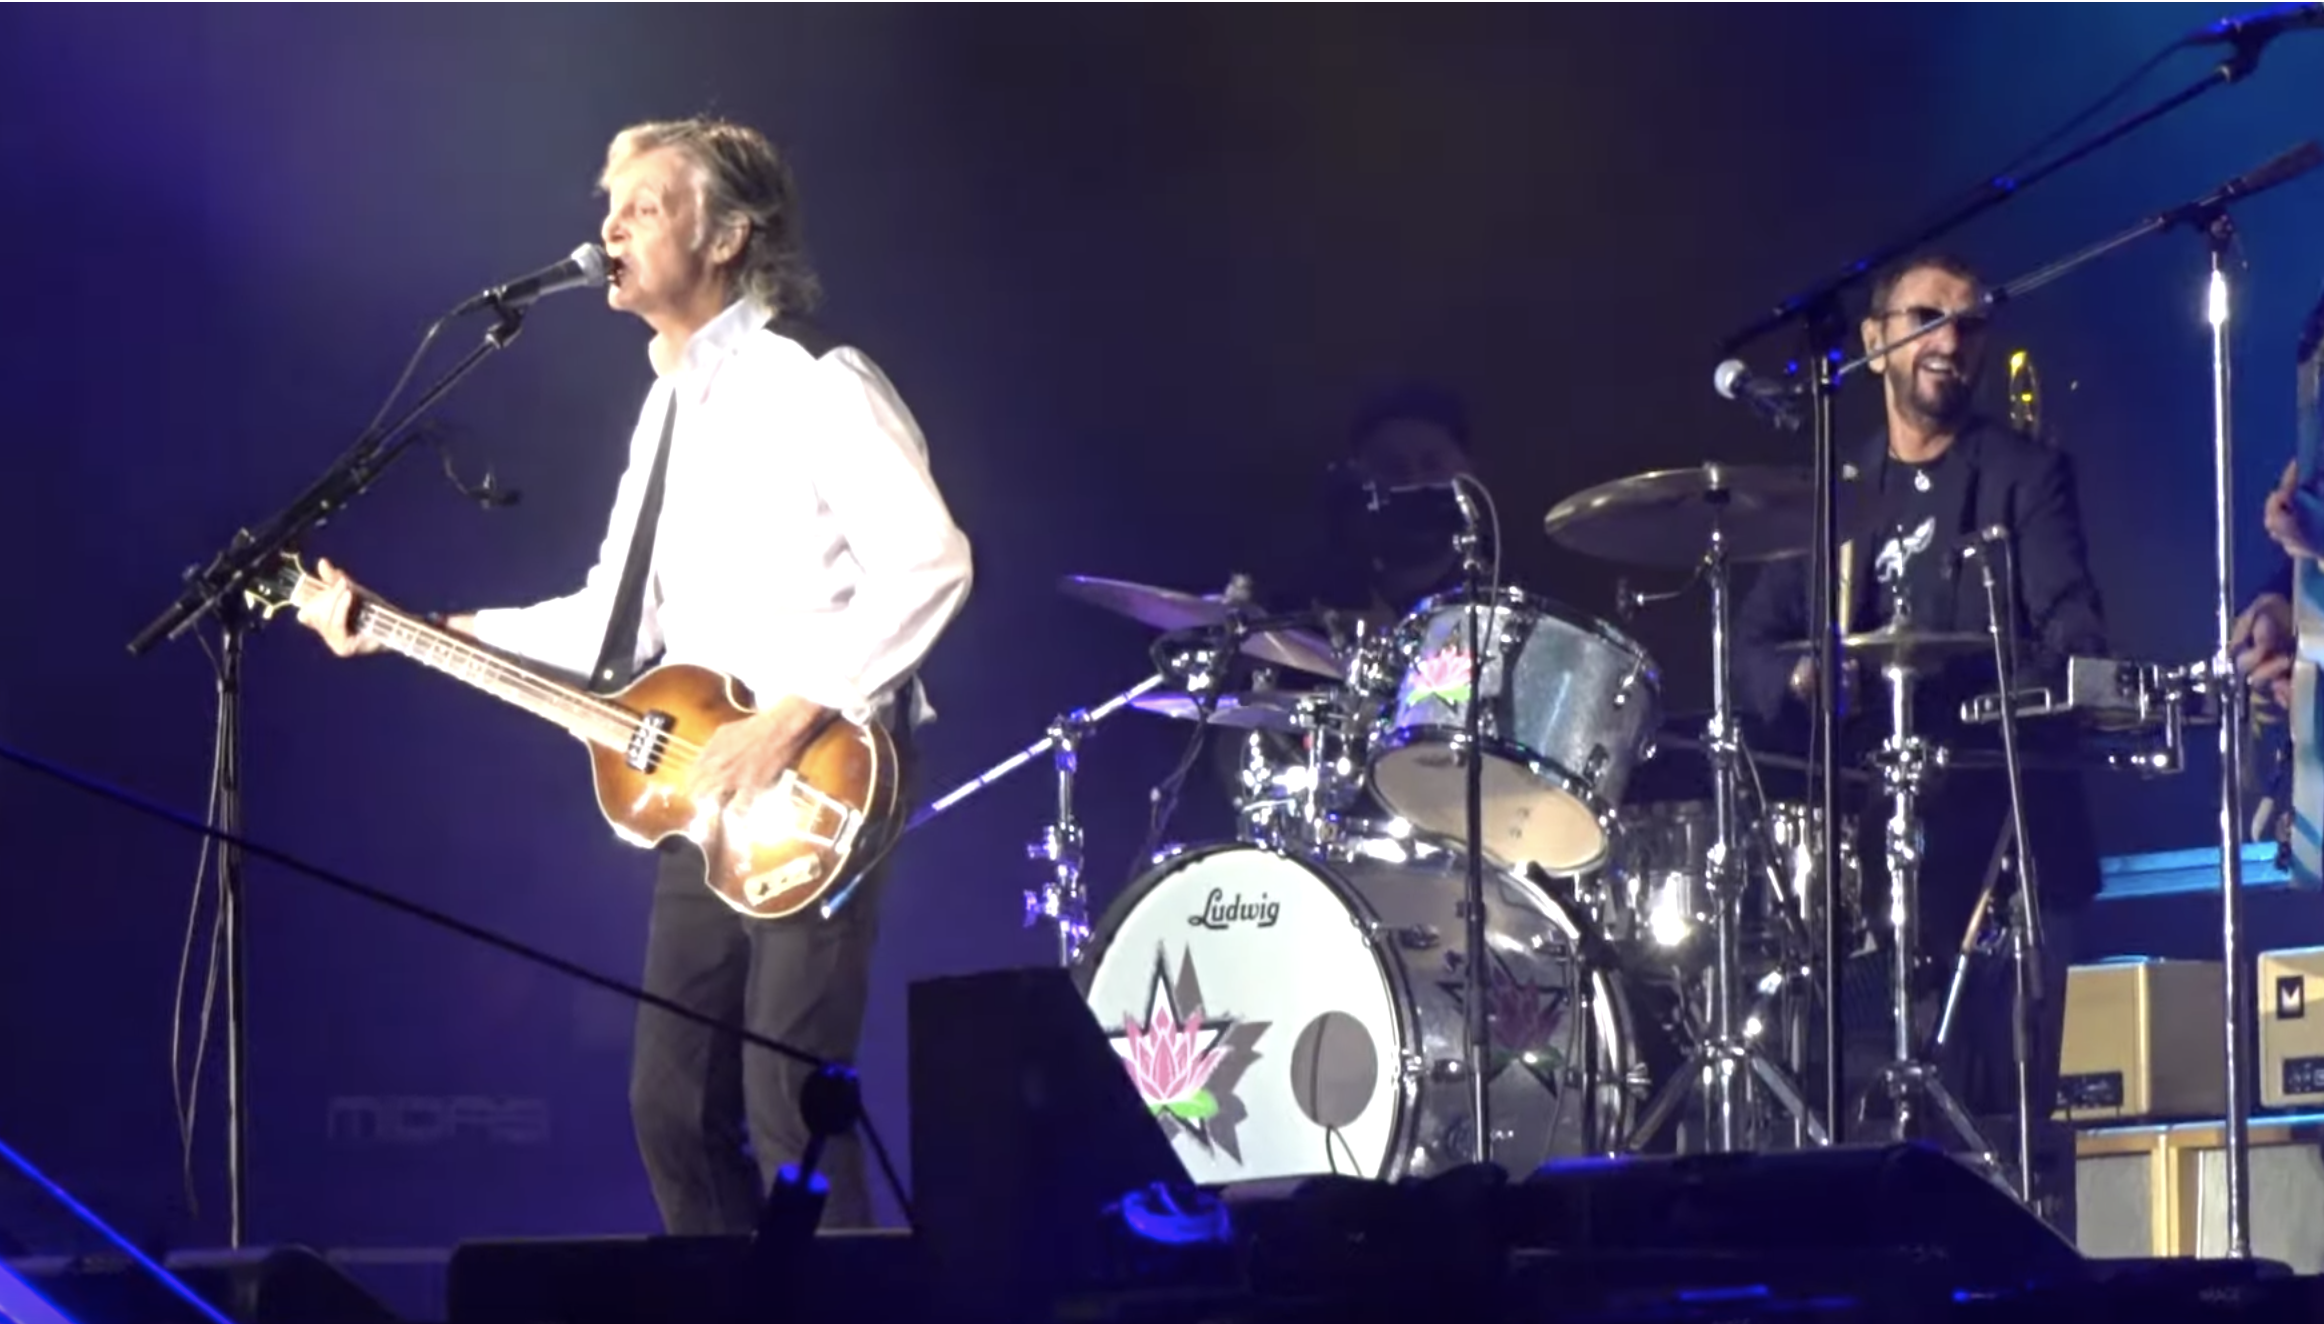 See Paul McCartney Reunite With Ringo Starr to Play Beatles Classics at L.A. Concert